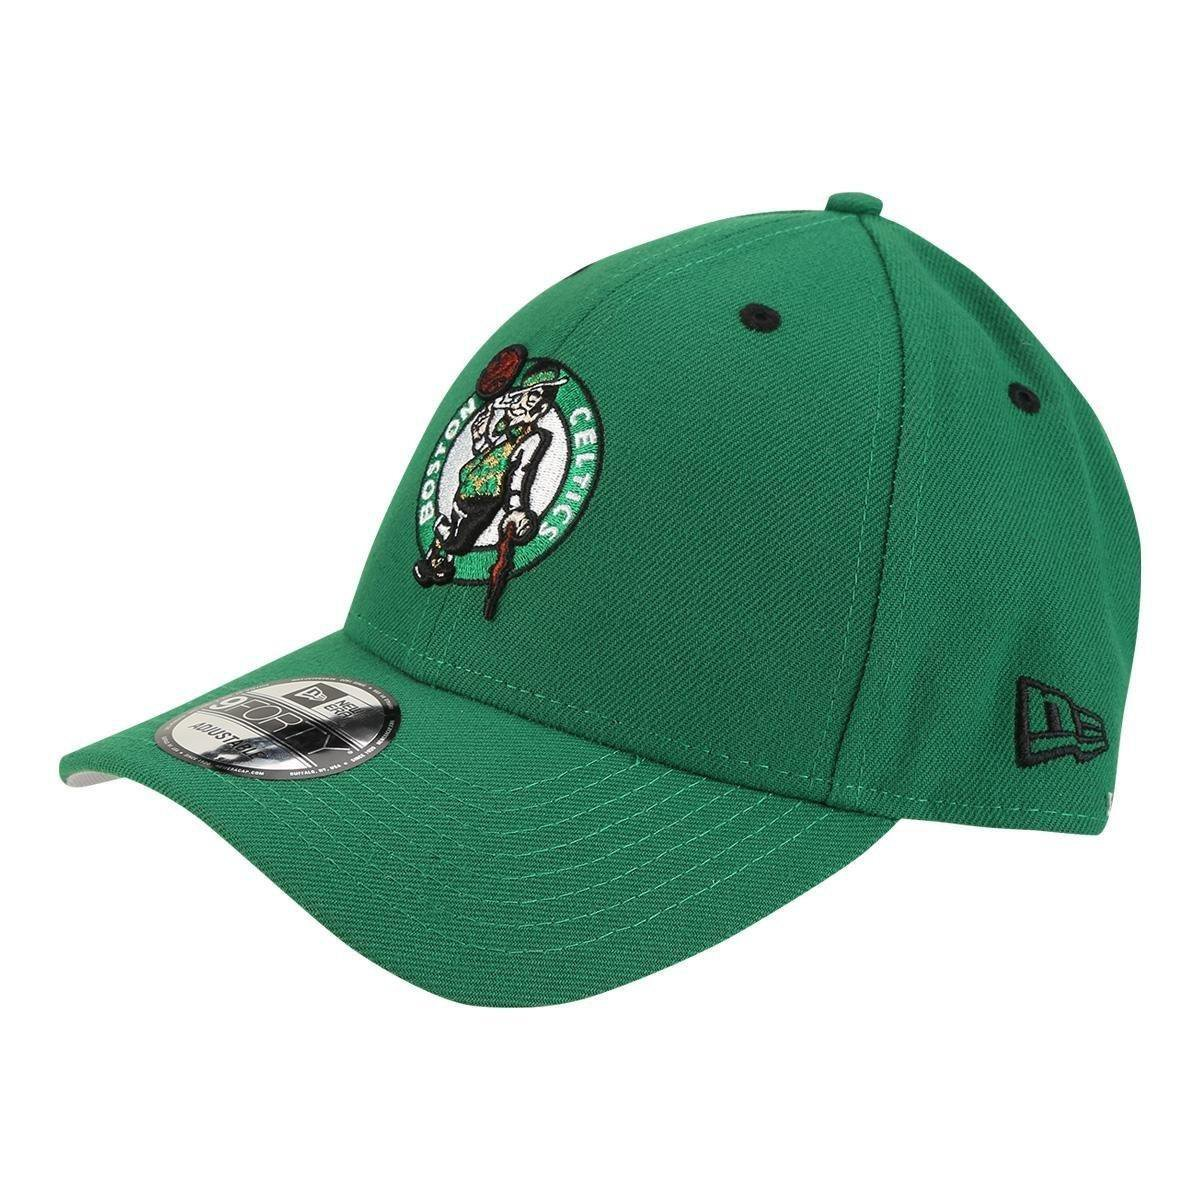 Boné New Era NBA Boston Celtics Aba Curva 940 Hc Sn Official Masculino - Compre  Agora  75b58df36c553